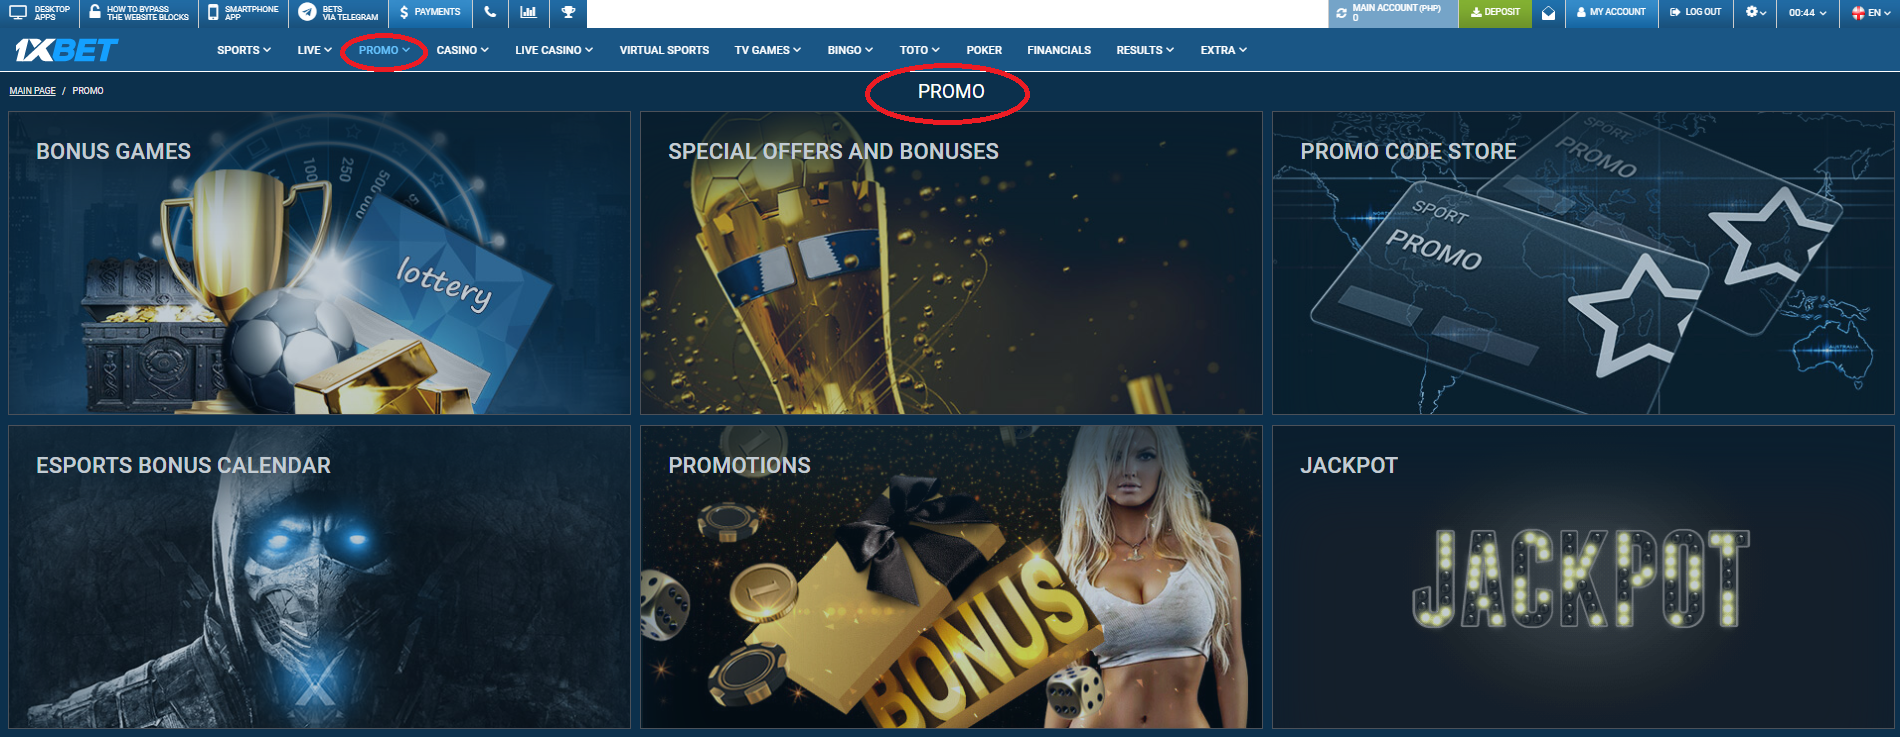 How to specify promo code for registration in 1xBet